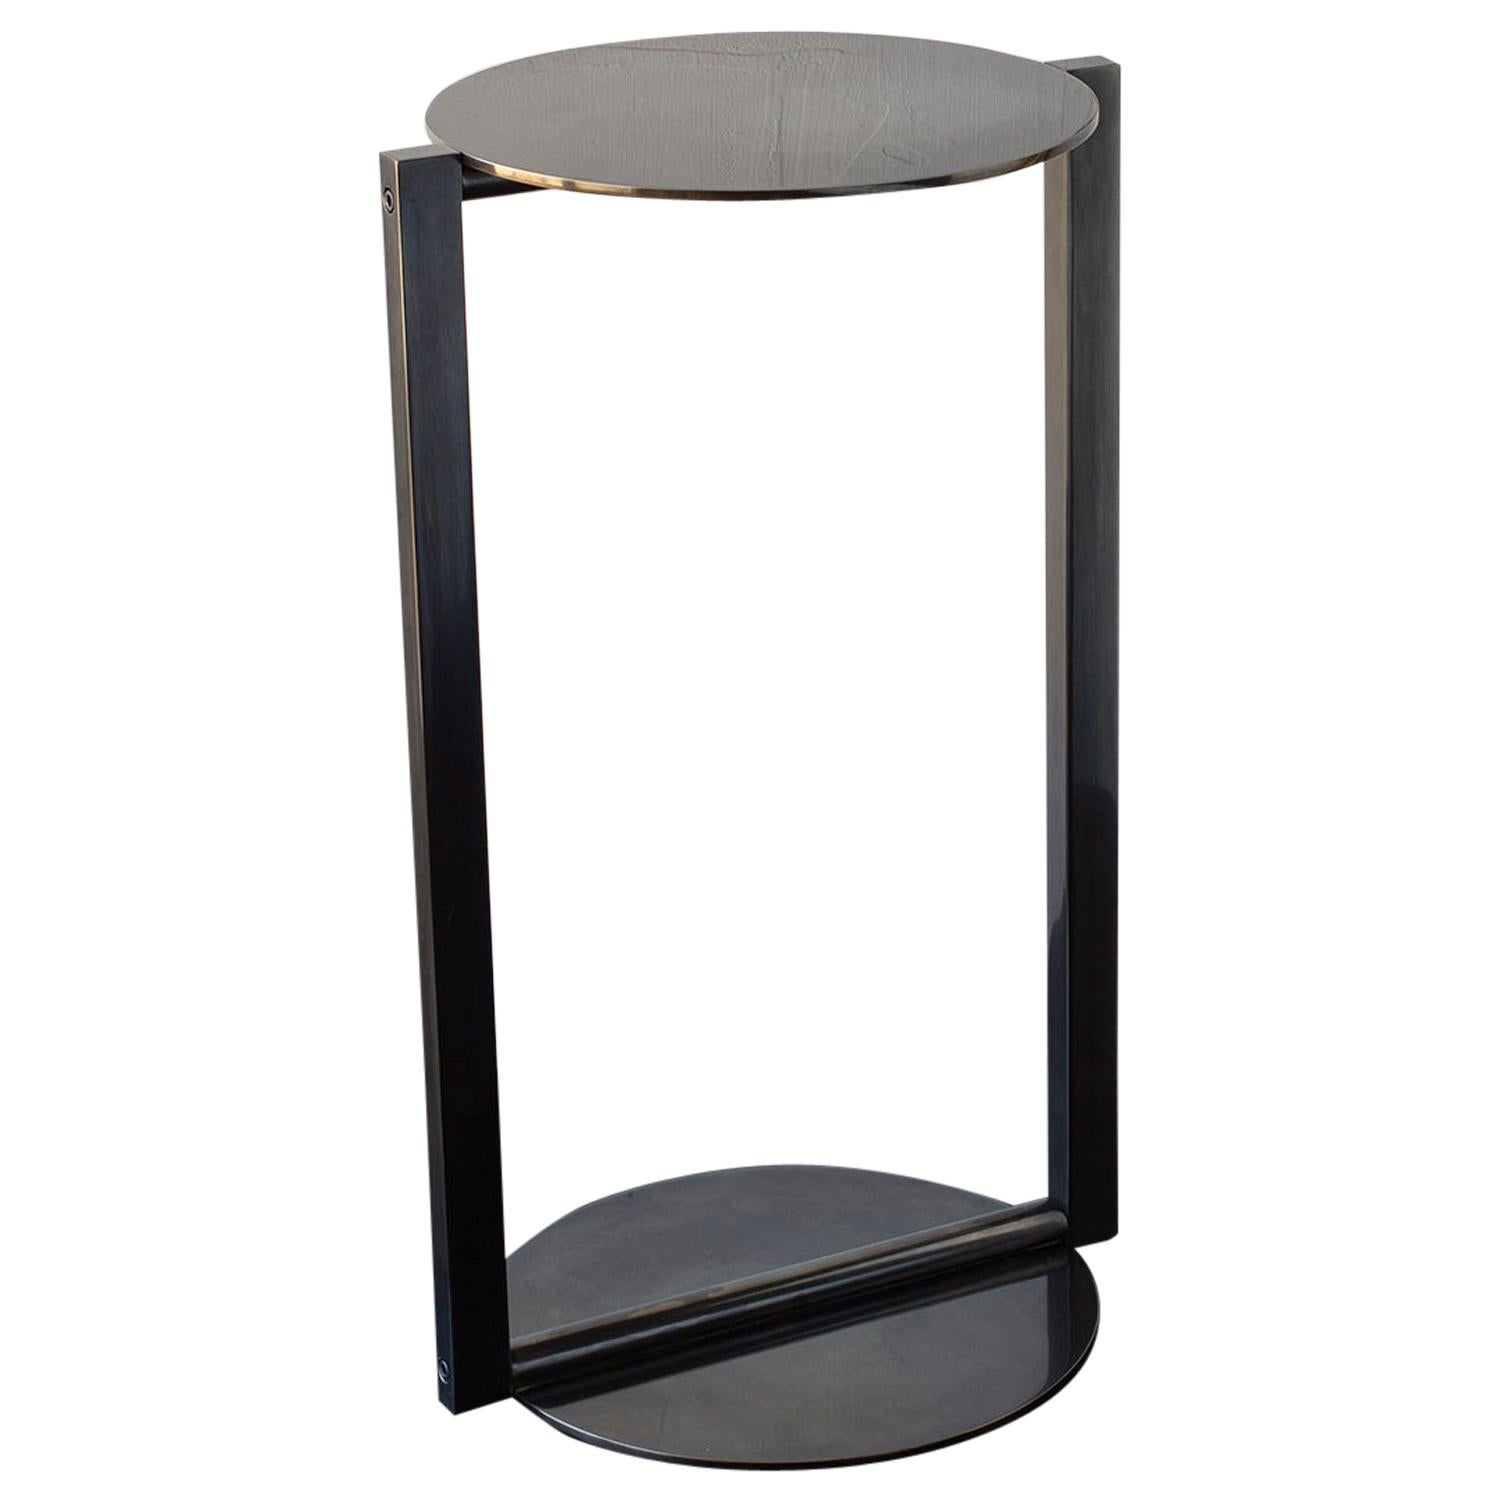 Untitled Side Table 2.0 Dark Patinated Brass Small Round Accent, End, Drink Tray